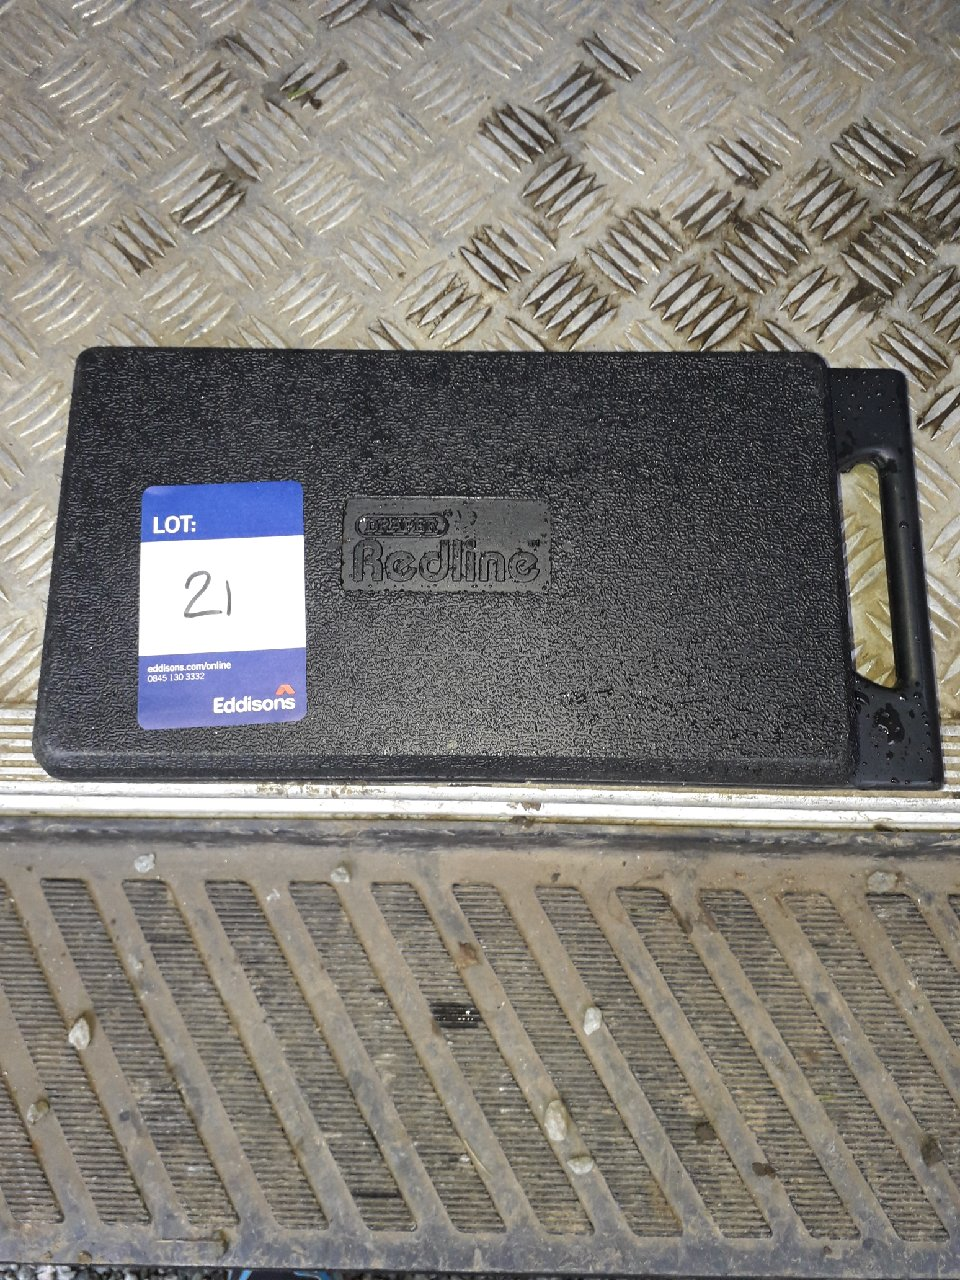 Lot 21 - Draper redline 25pc socket set. (Please note: Viewing is by appointment only. Please Tel: 0161 429